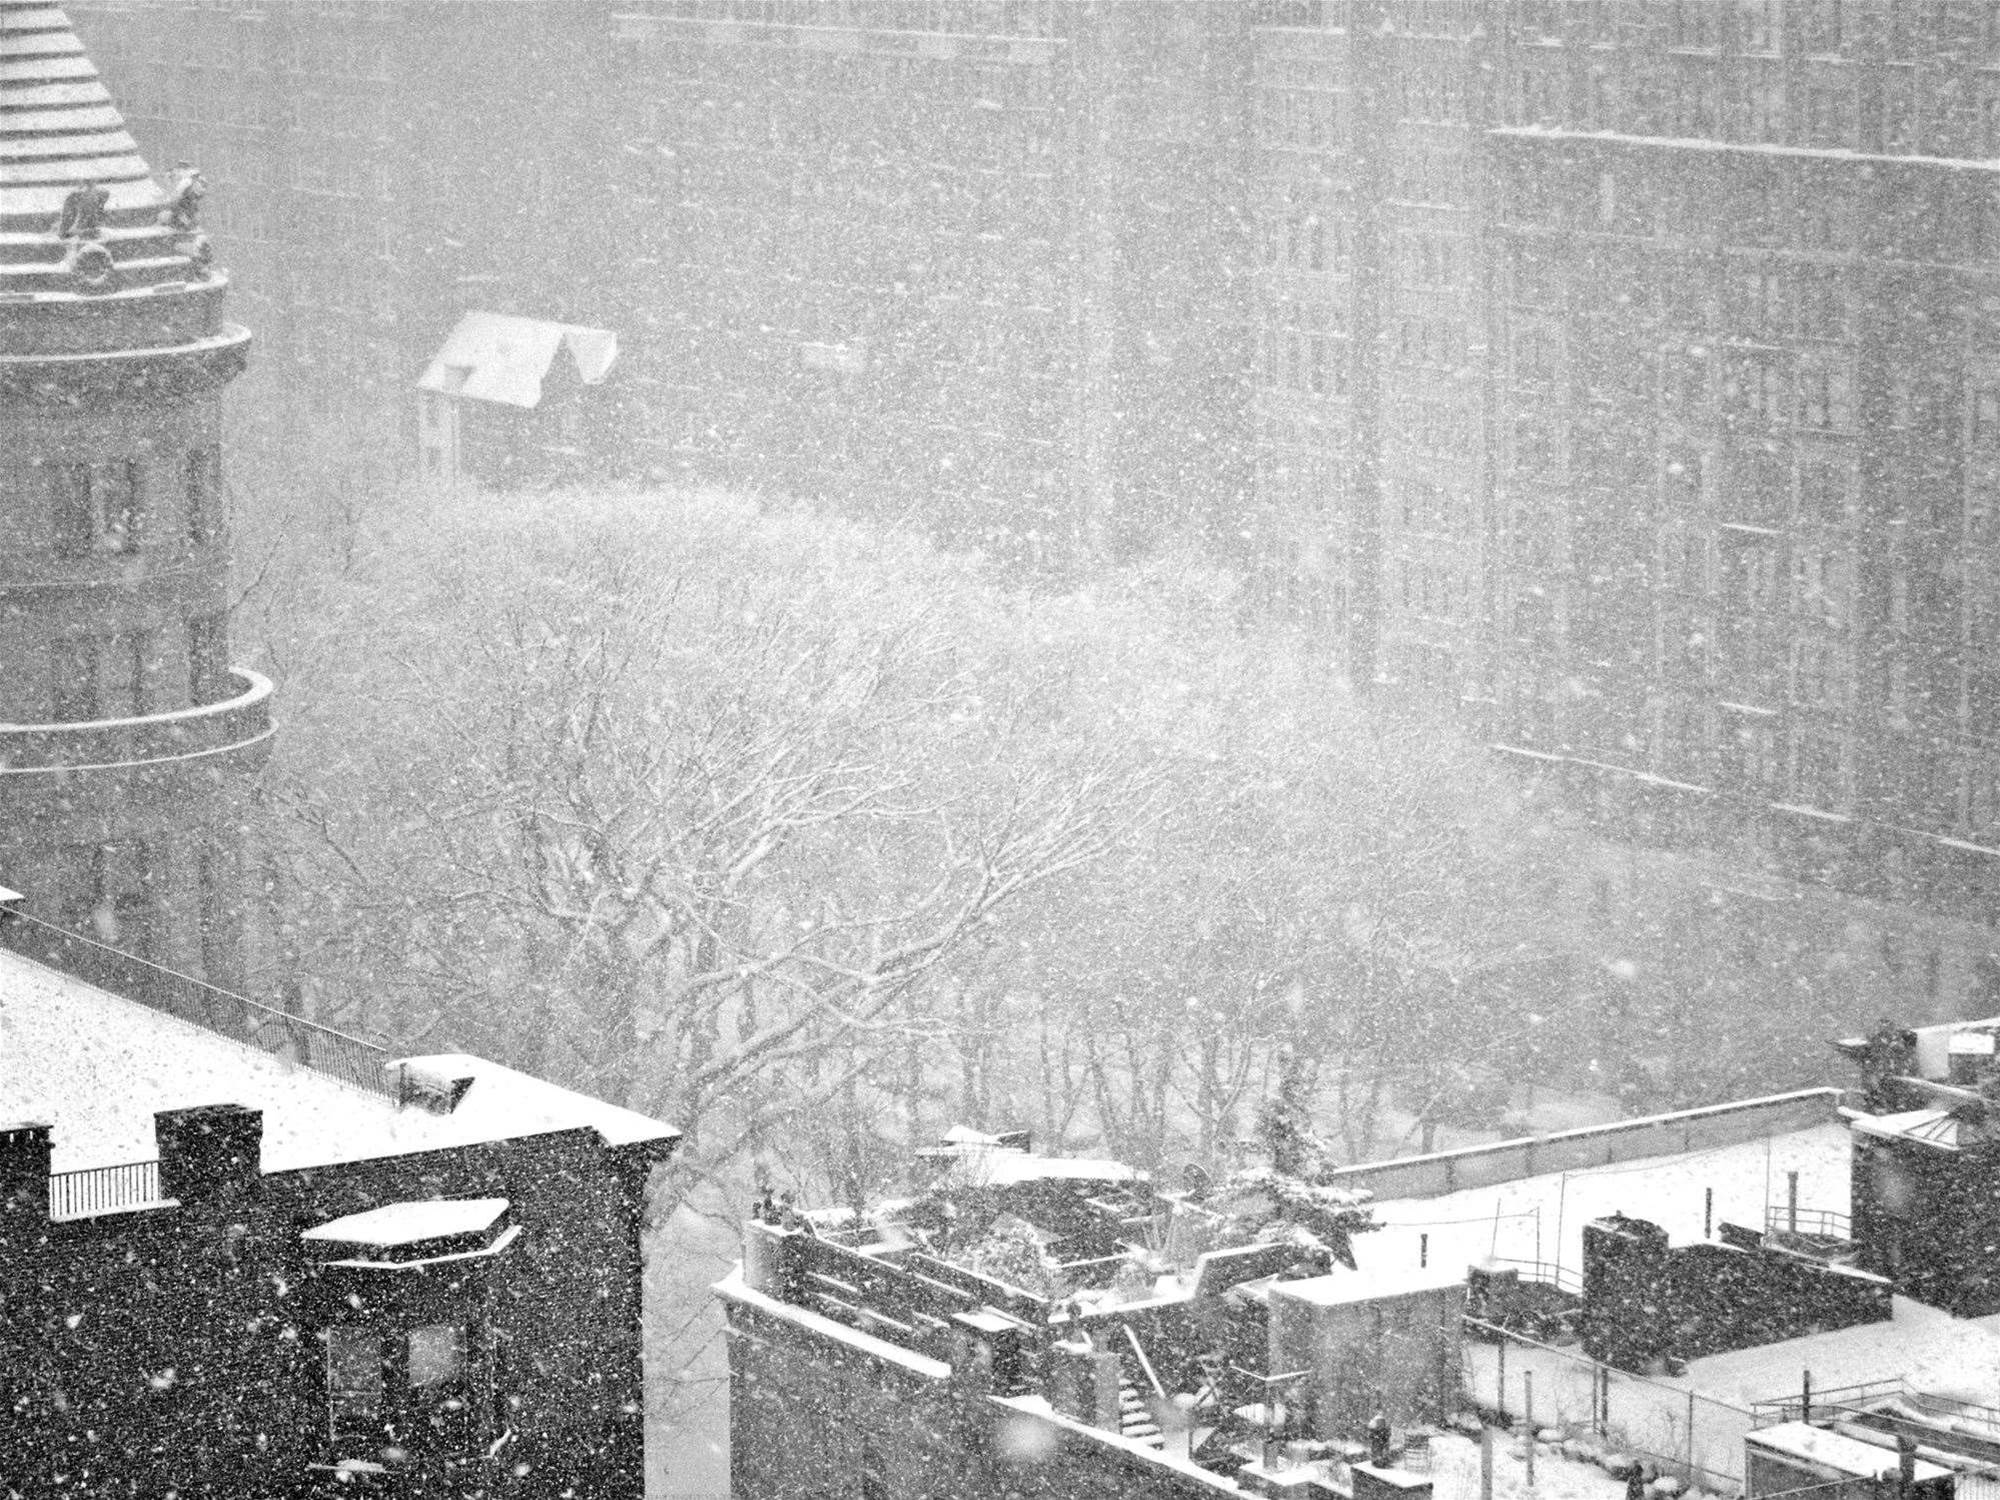 Not All Big Snowstorms Are Blizzards, But This One Is